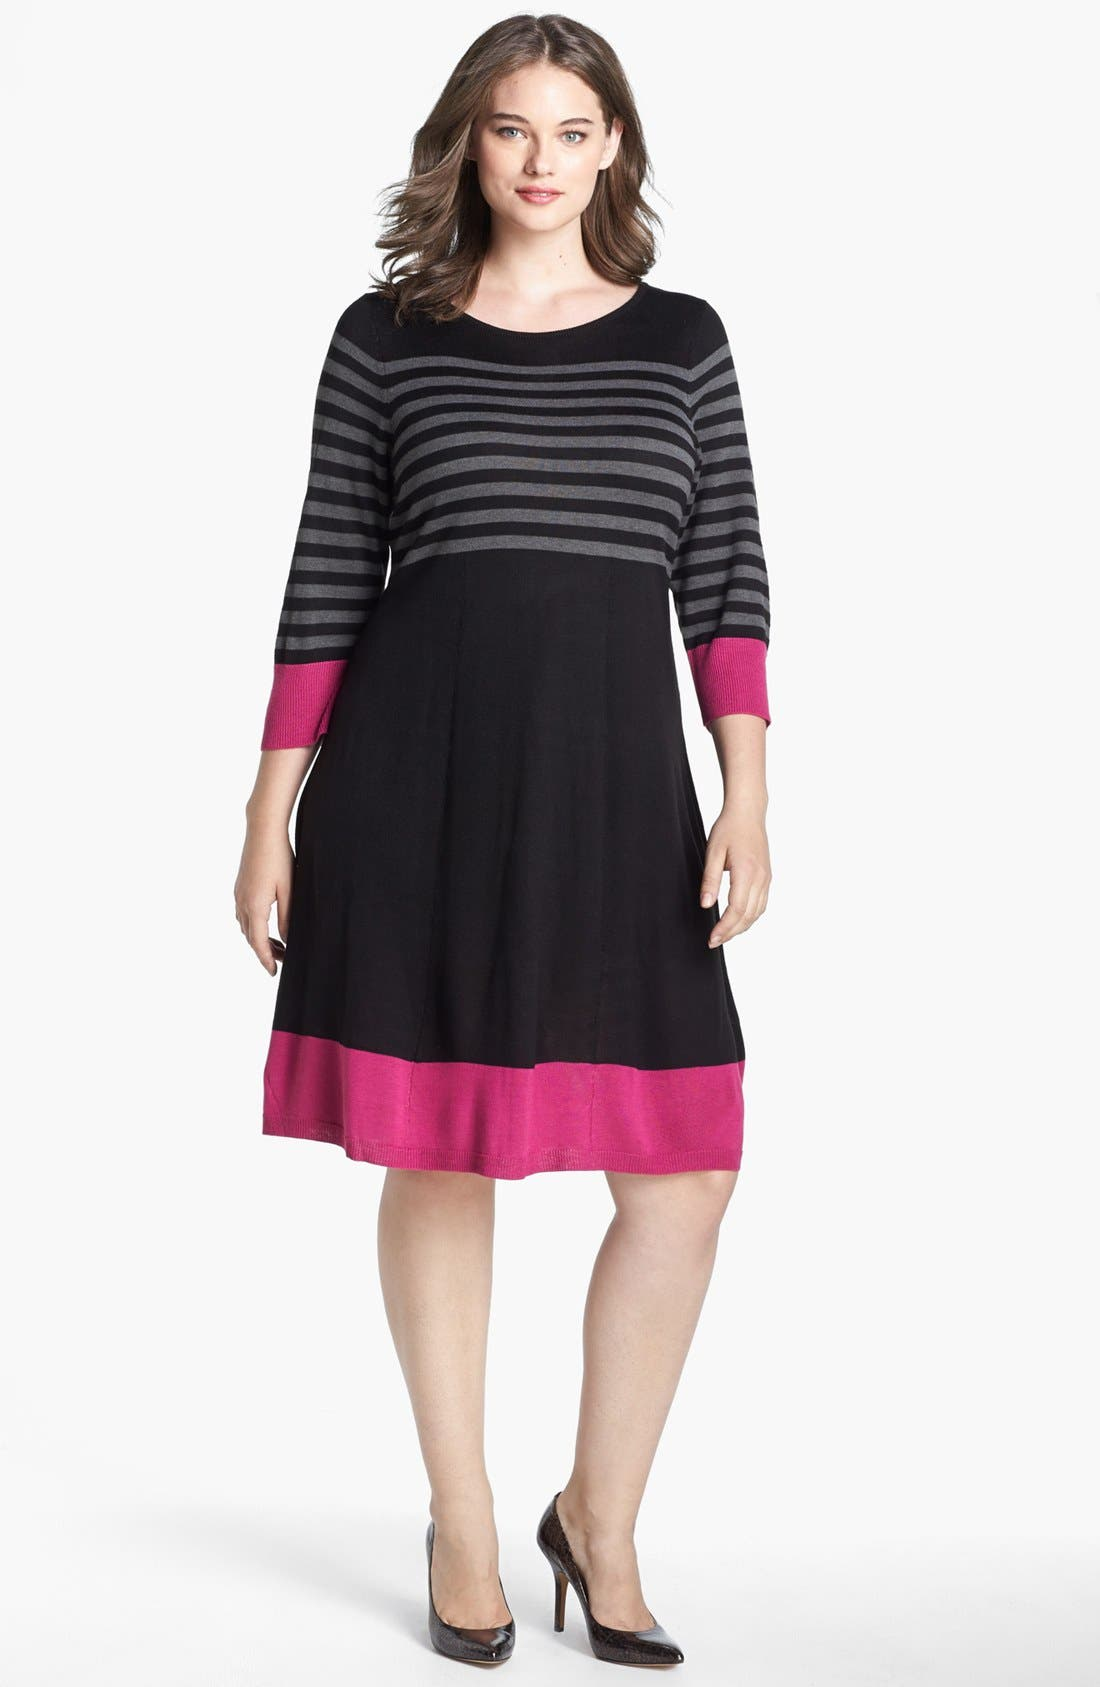 Alternate Image 1 Selected - Eliza J Fit & Flare Sweater Dress (Plus Size)